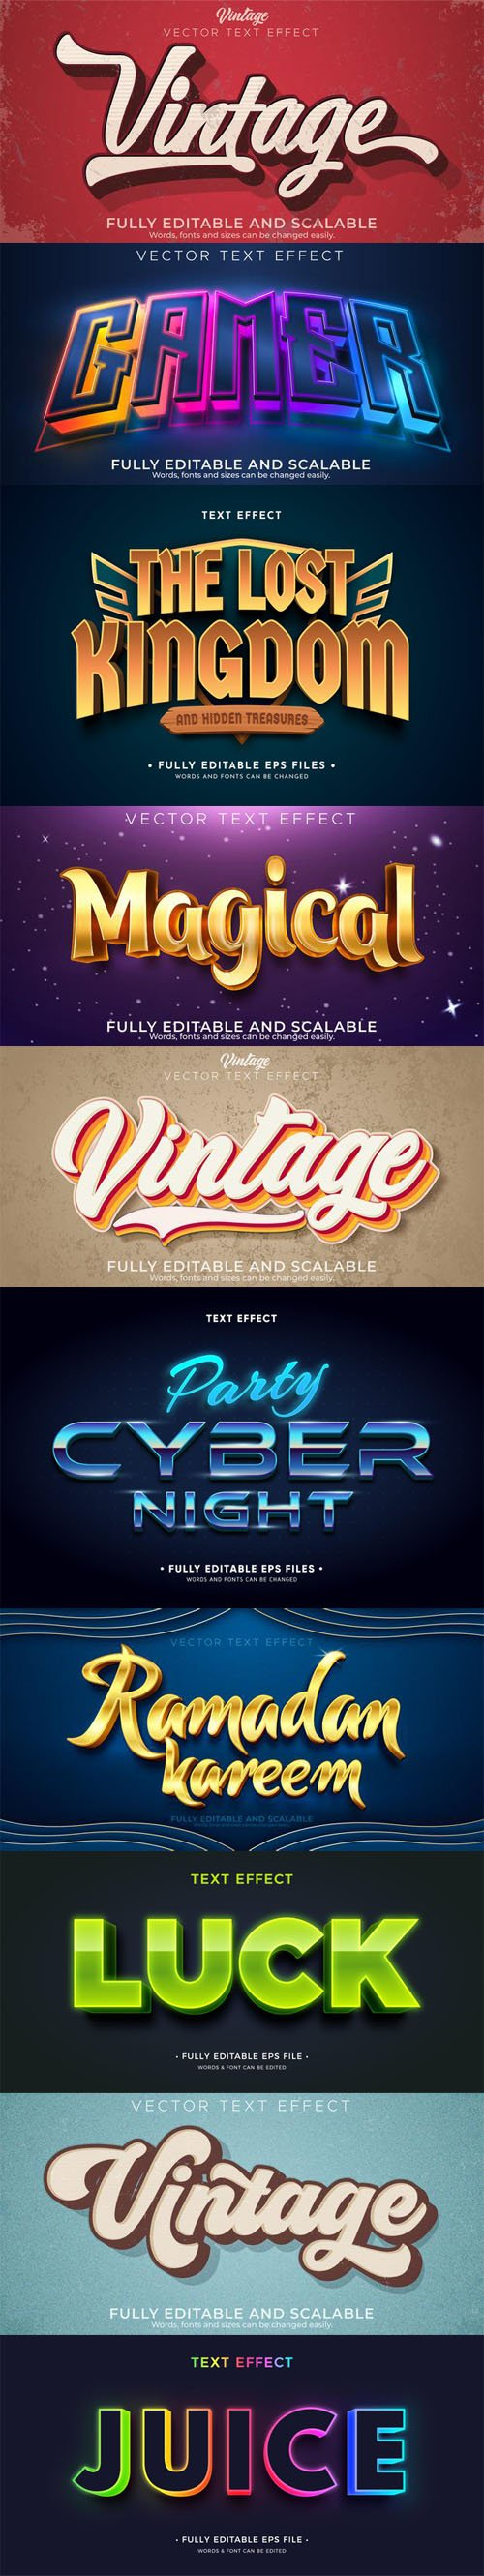 10 Creative Text Effects Vector Collection